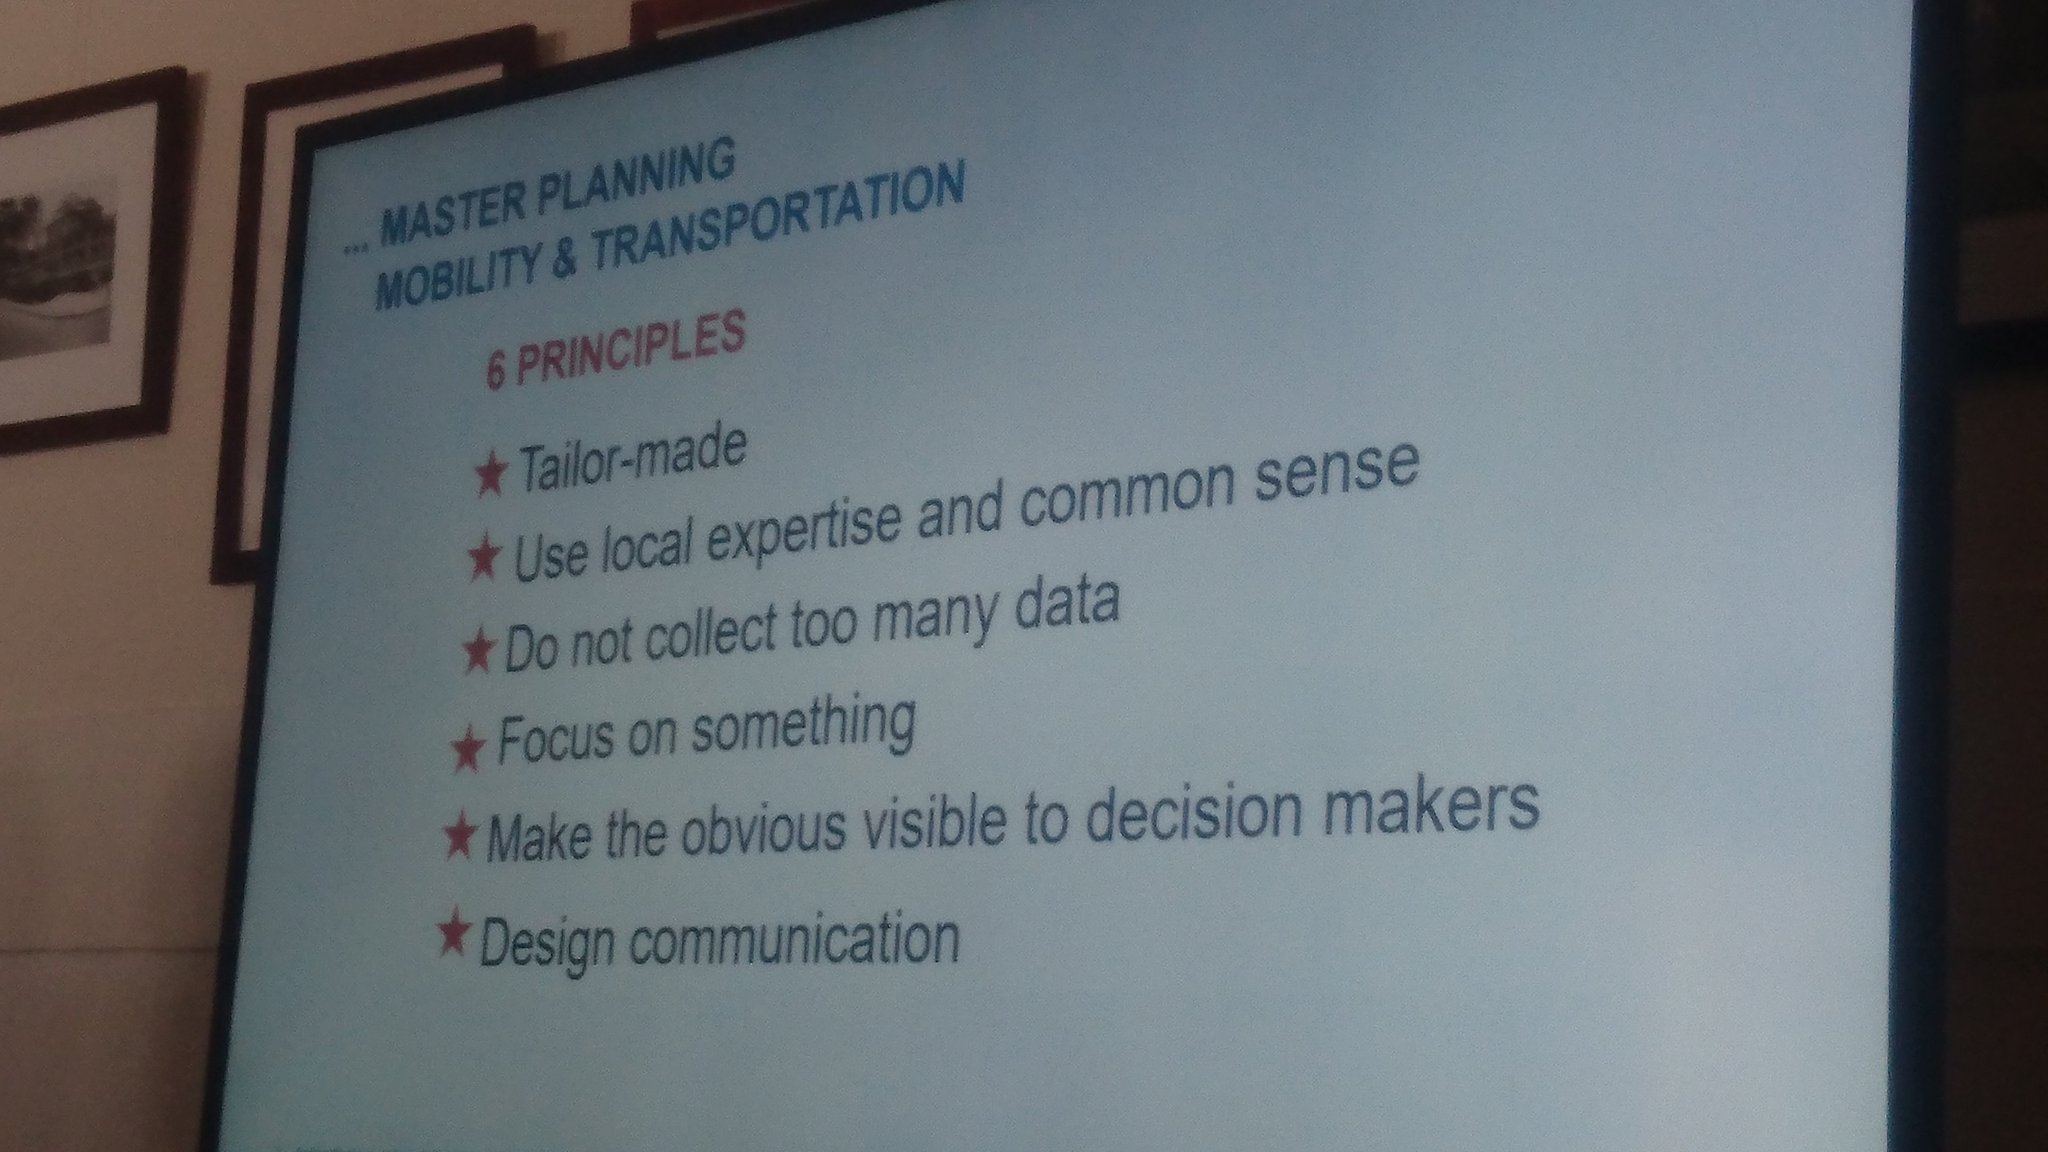 6 principles of master planning for cycling climber cities @CycleCompetence member @andrea_weninger from consultant planners Rosinak #VC17 https://t.co/tjQN1WVvAV